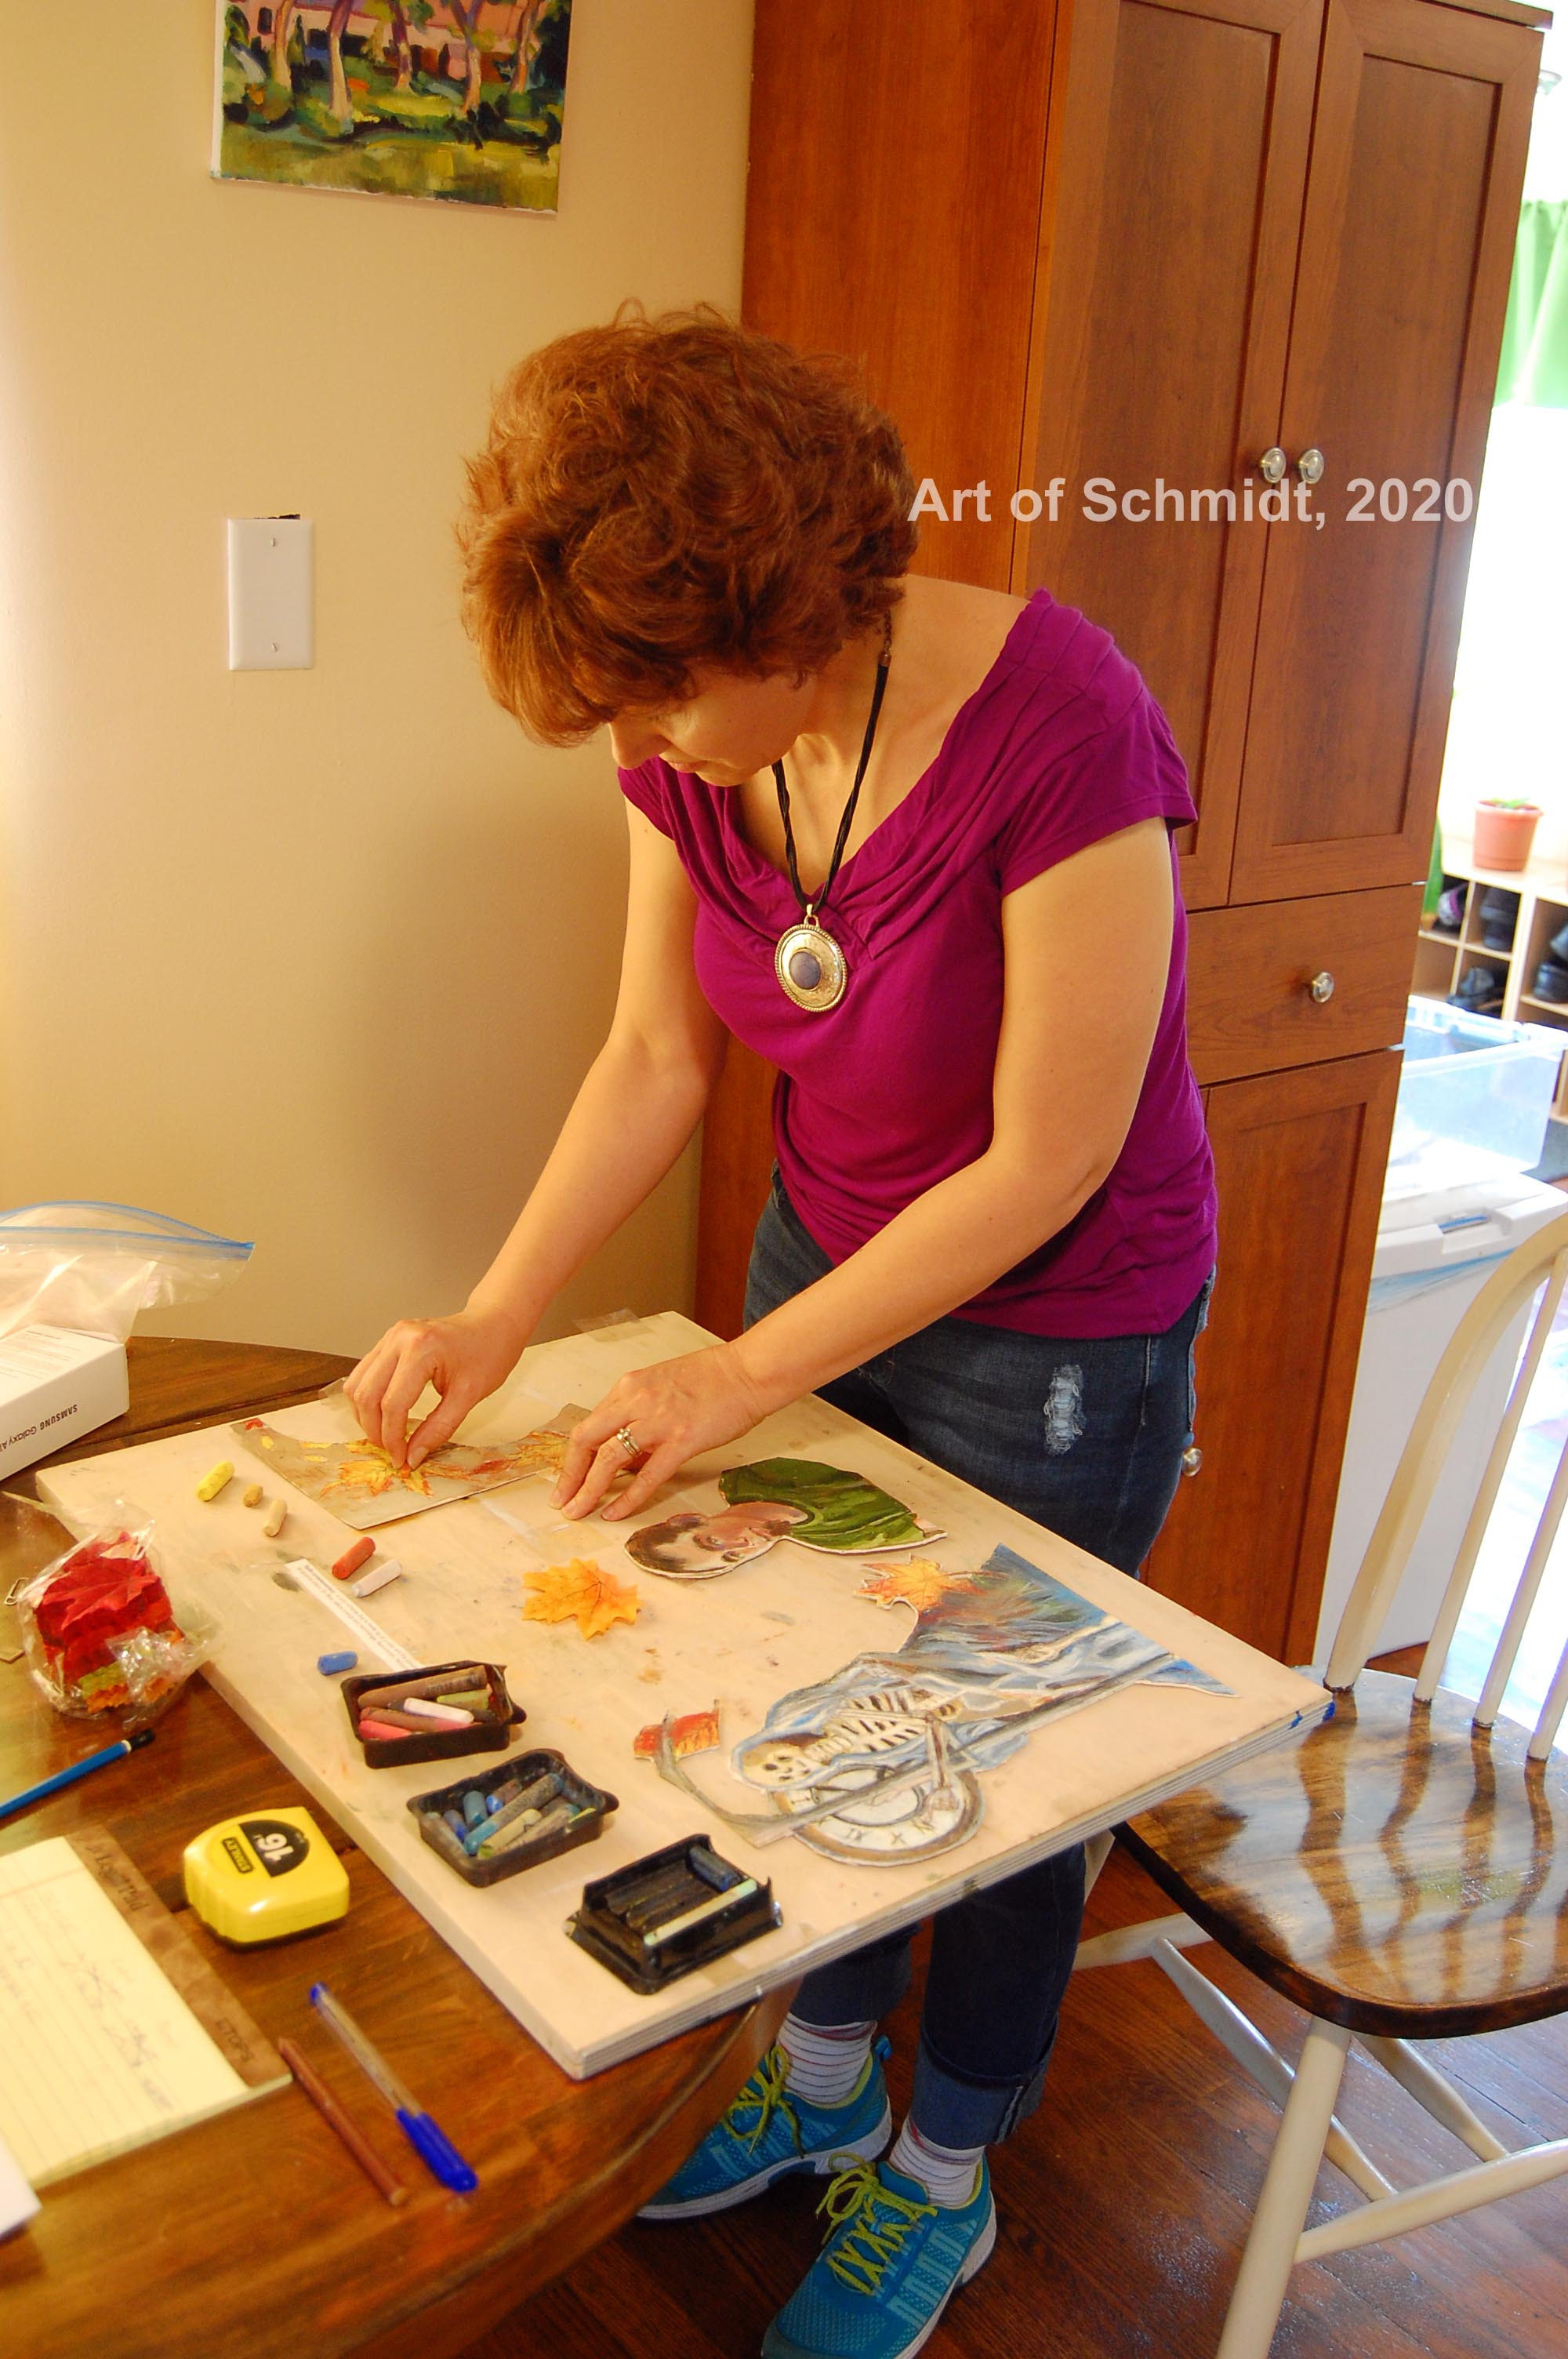 Artist at work, with watermark